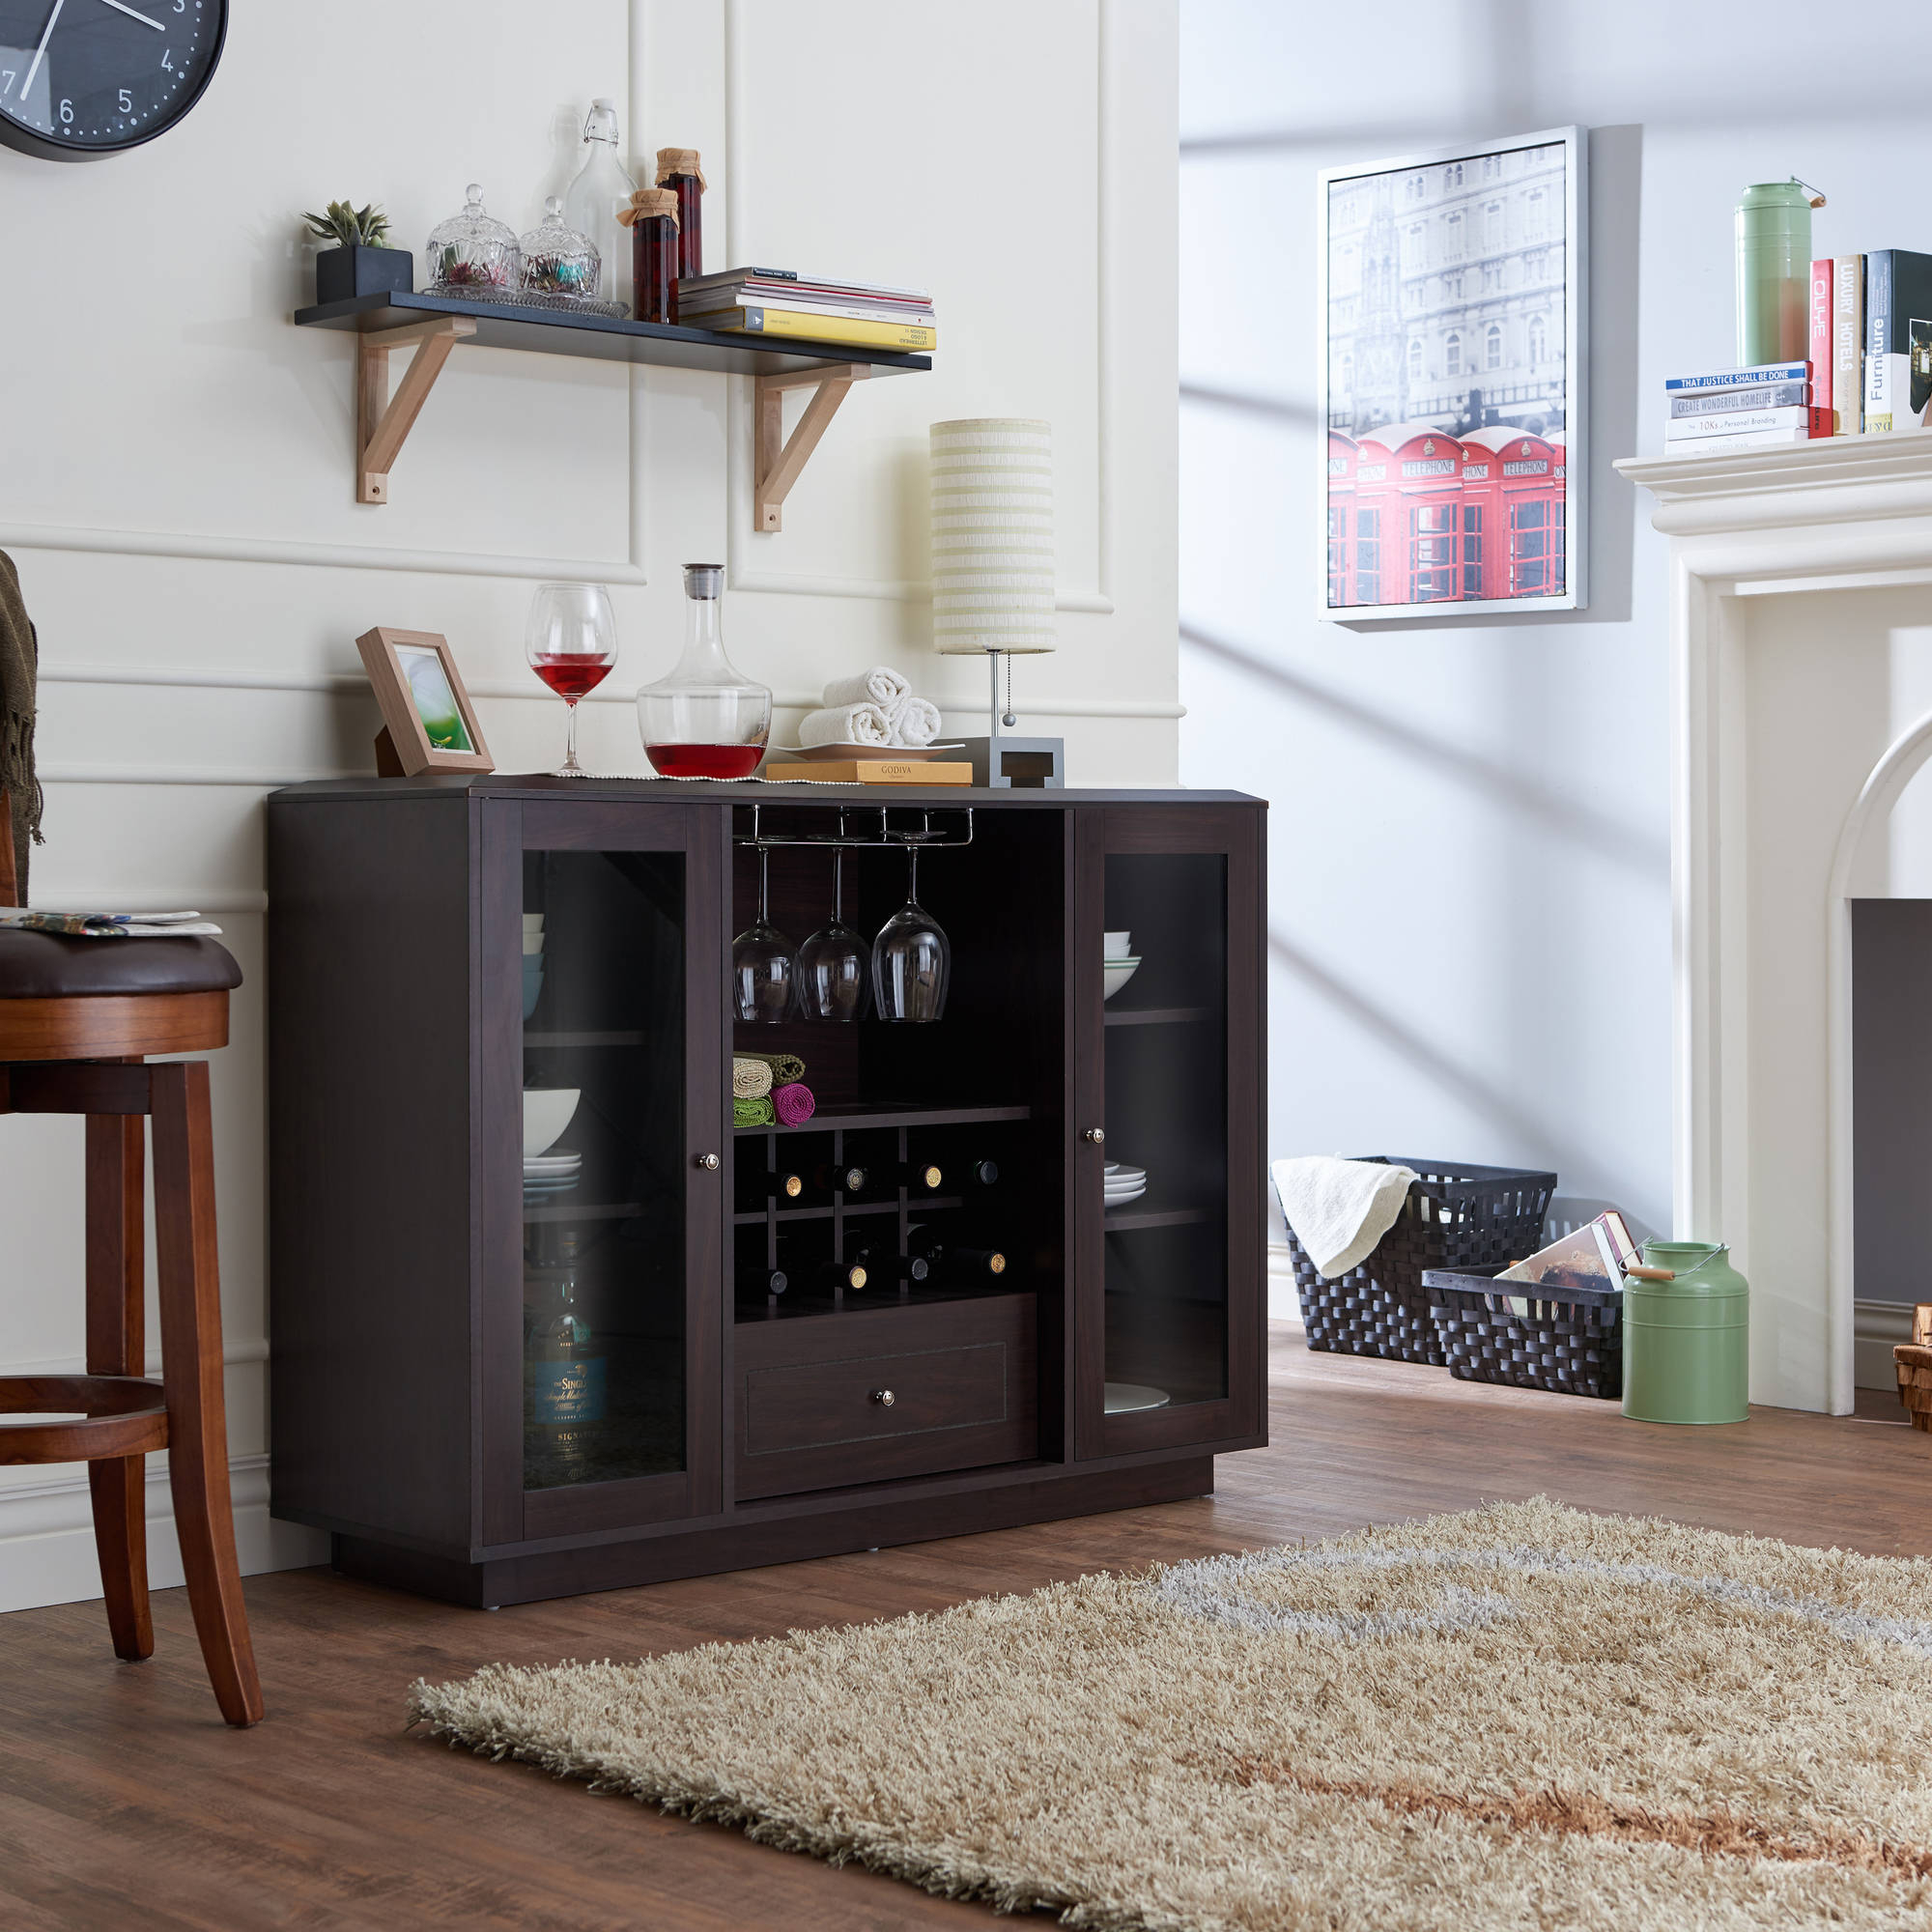 Furniture Of America Hegard Modern Multi Storage Dining Buffet, Espresso Intended For Contemporary Multi Storage Dining Buffets (View 19 of 30)